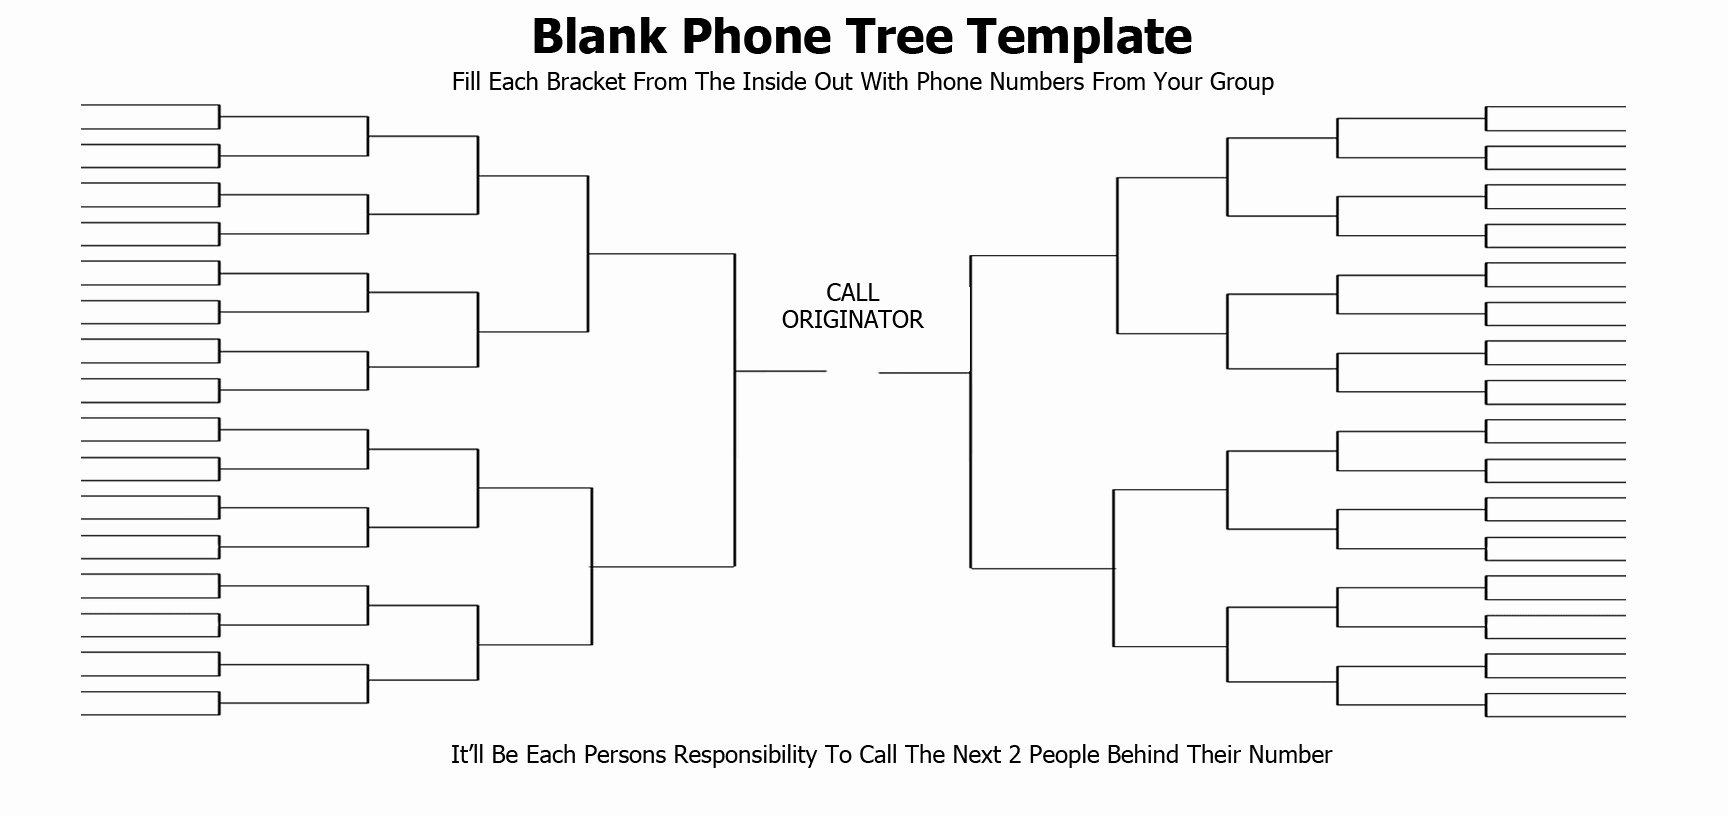 Call Tree Template Word New 5 Free Phone Tree Templates Word Excel Pdf formats